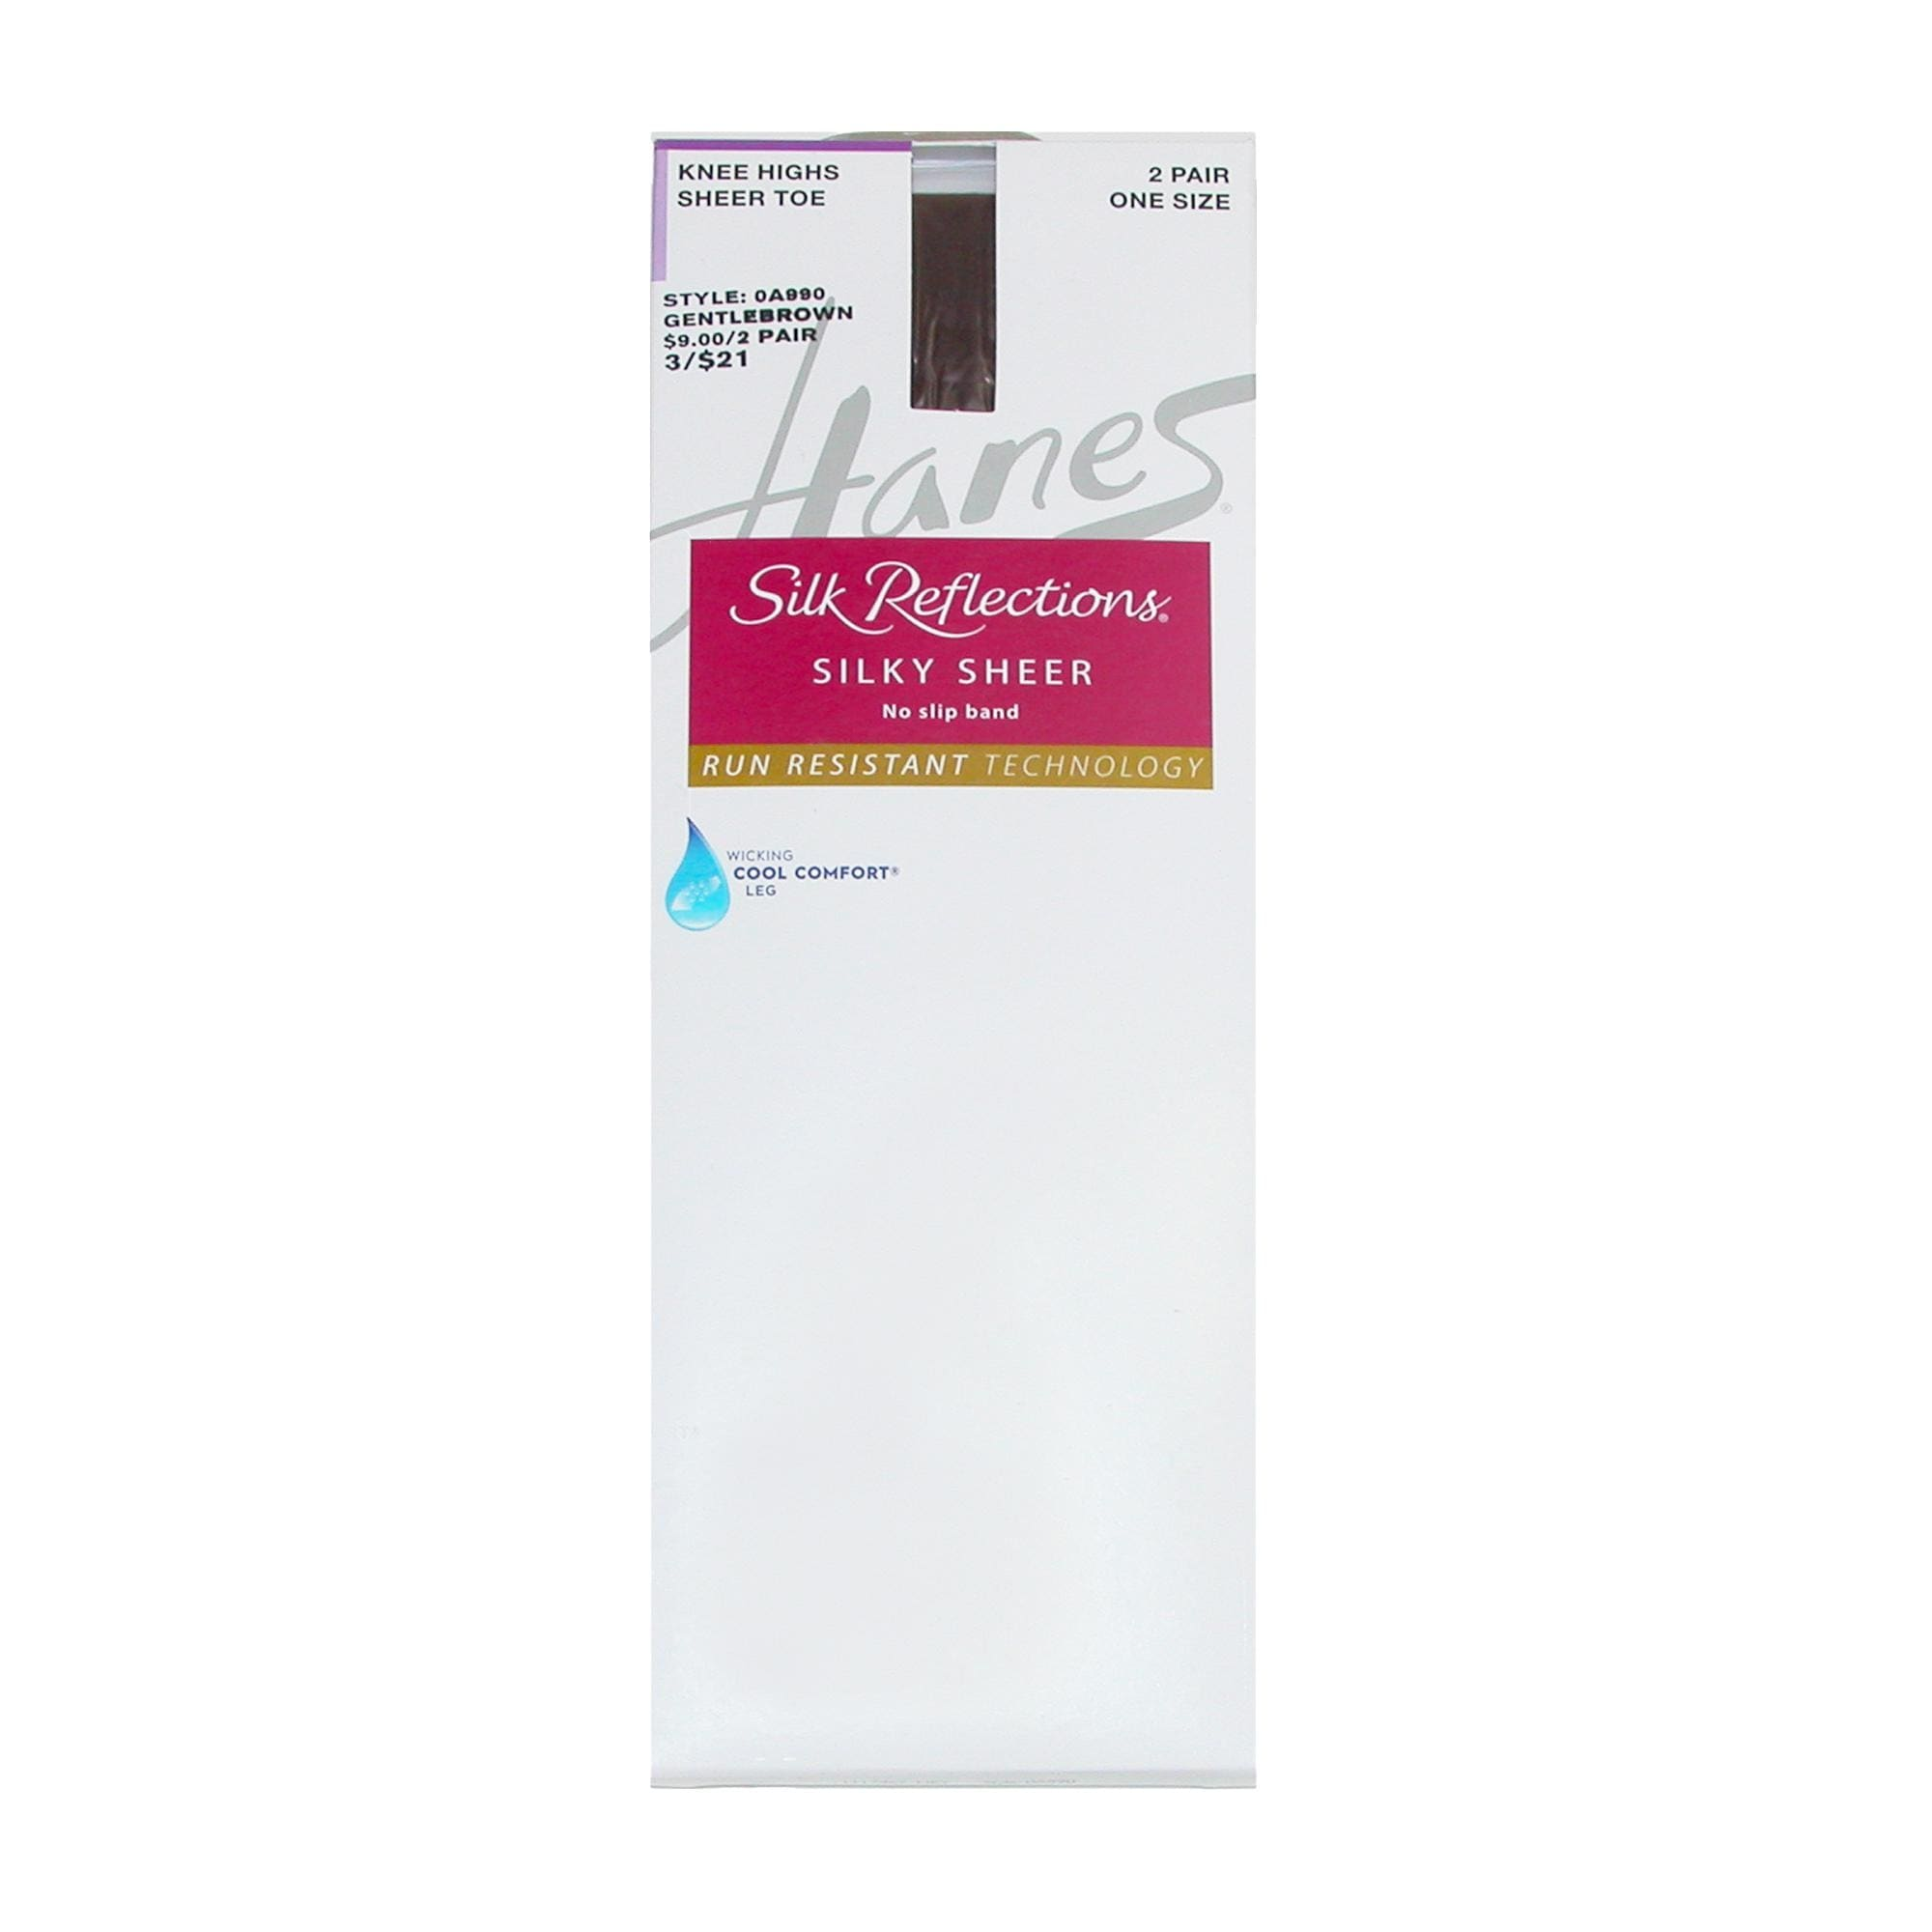 76adfd4cdbbc9 Shop Hanes Silk Reflections Run Resistant Sheer Knee Highs (2 Pair Pack) -  Free Shipping On Orders Over $45 - Overstock - 22315276